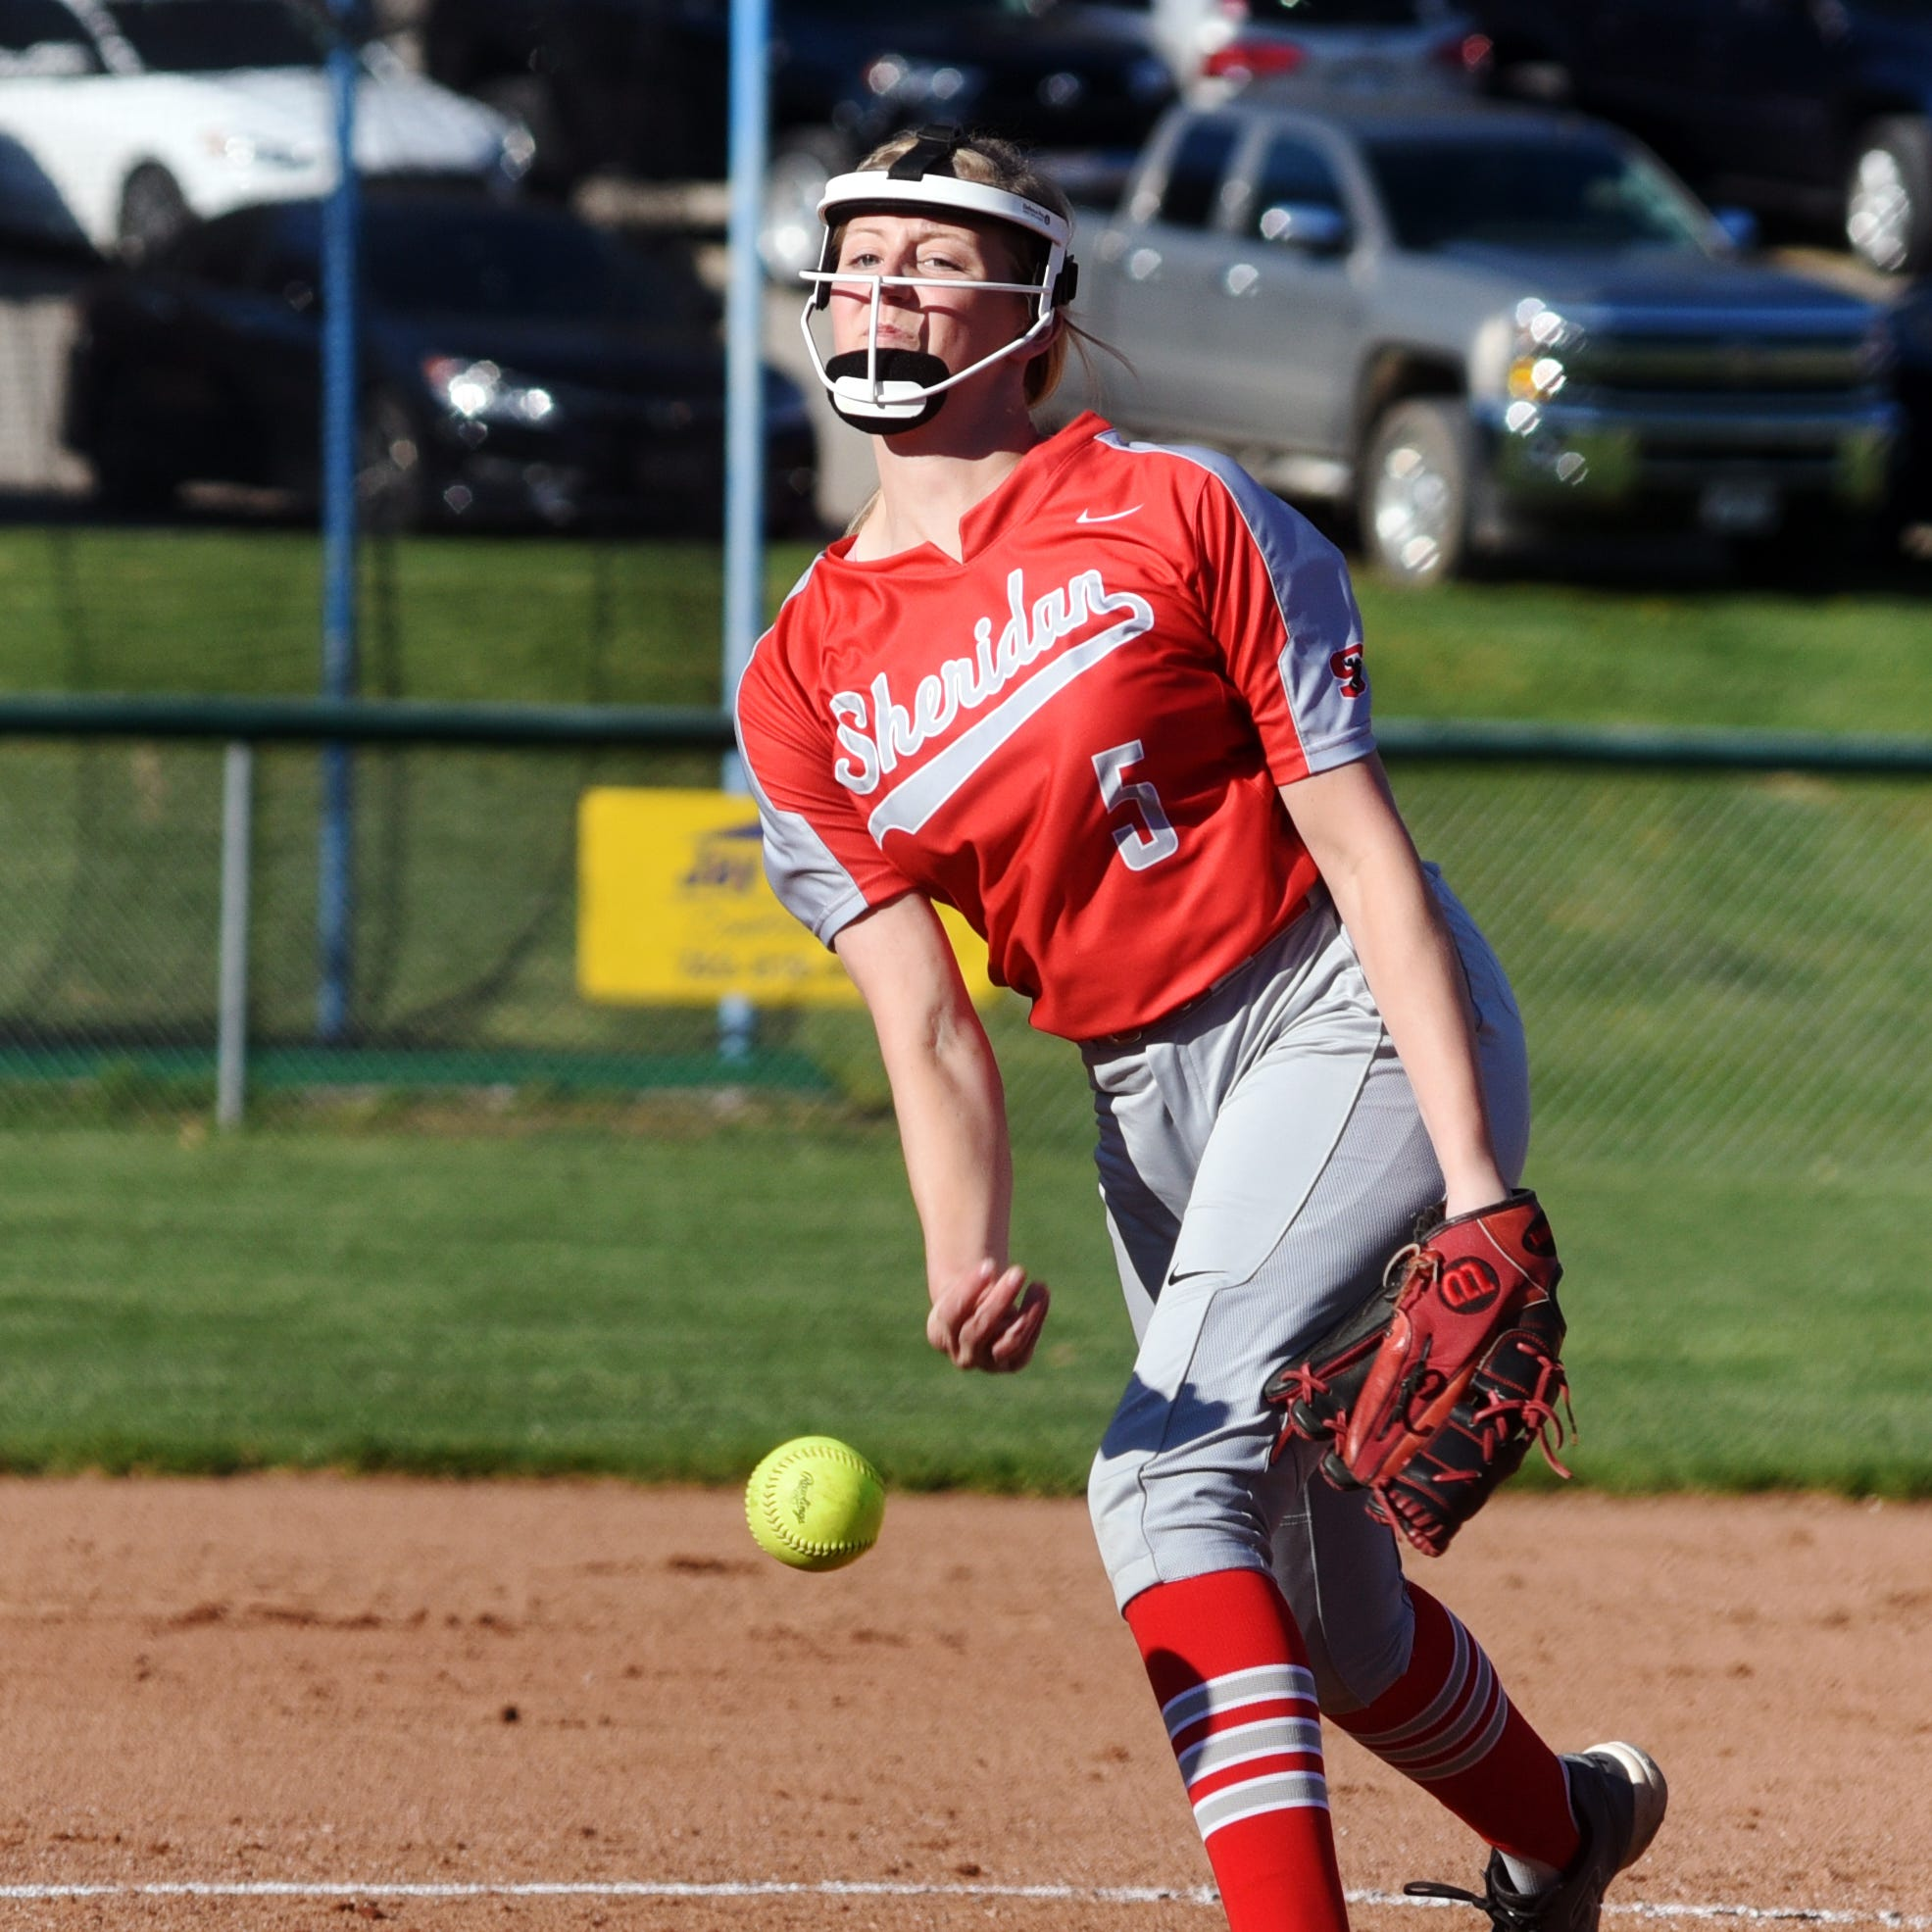 Sheridan pitcher dazzles against Philo